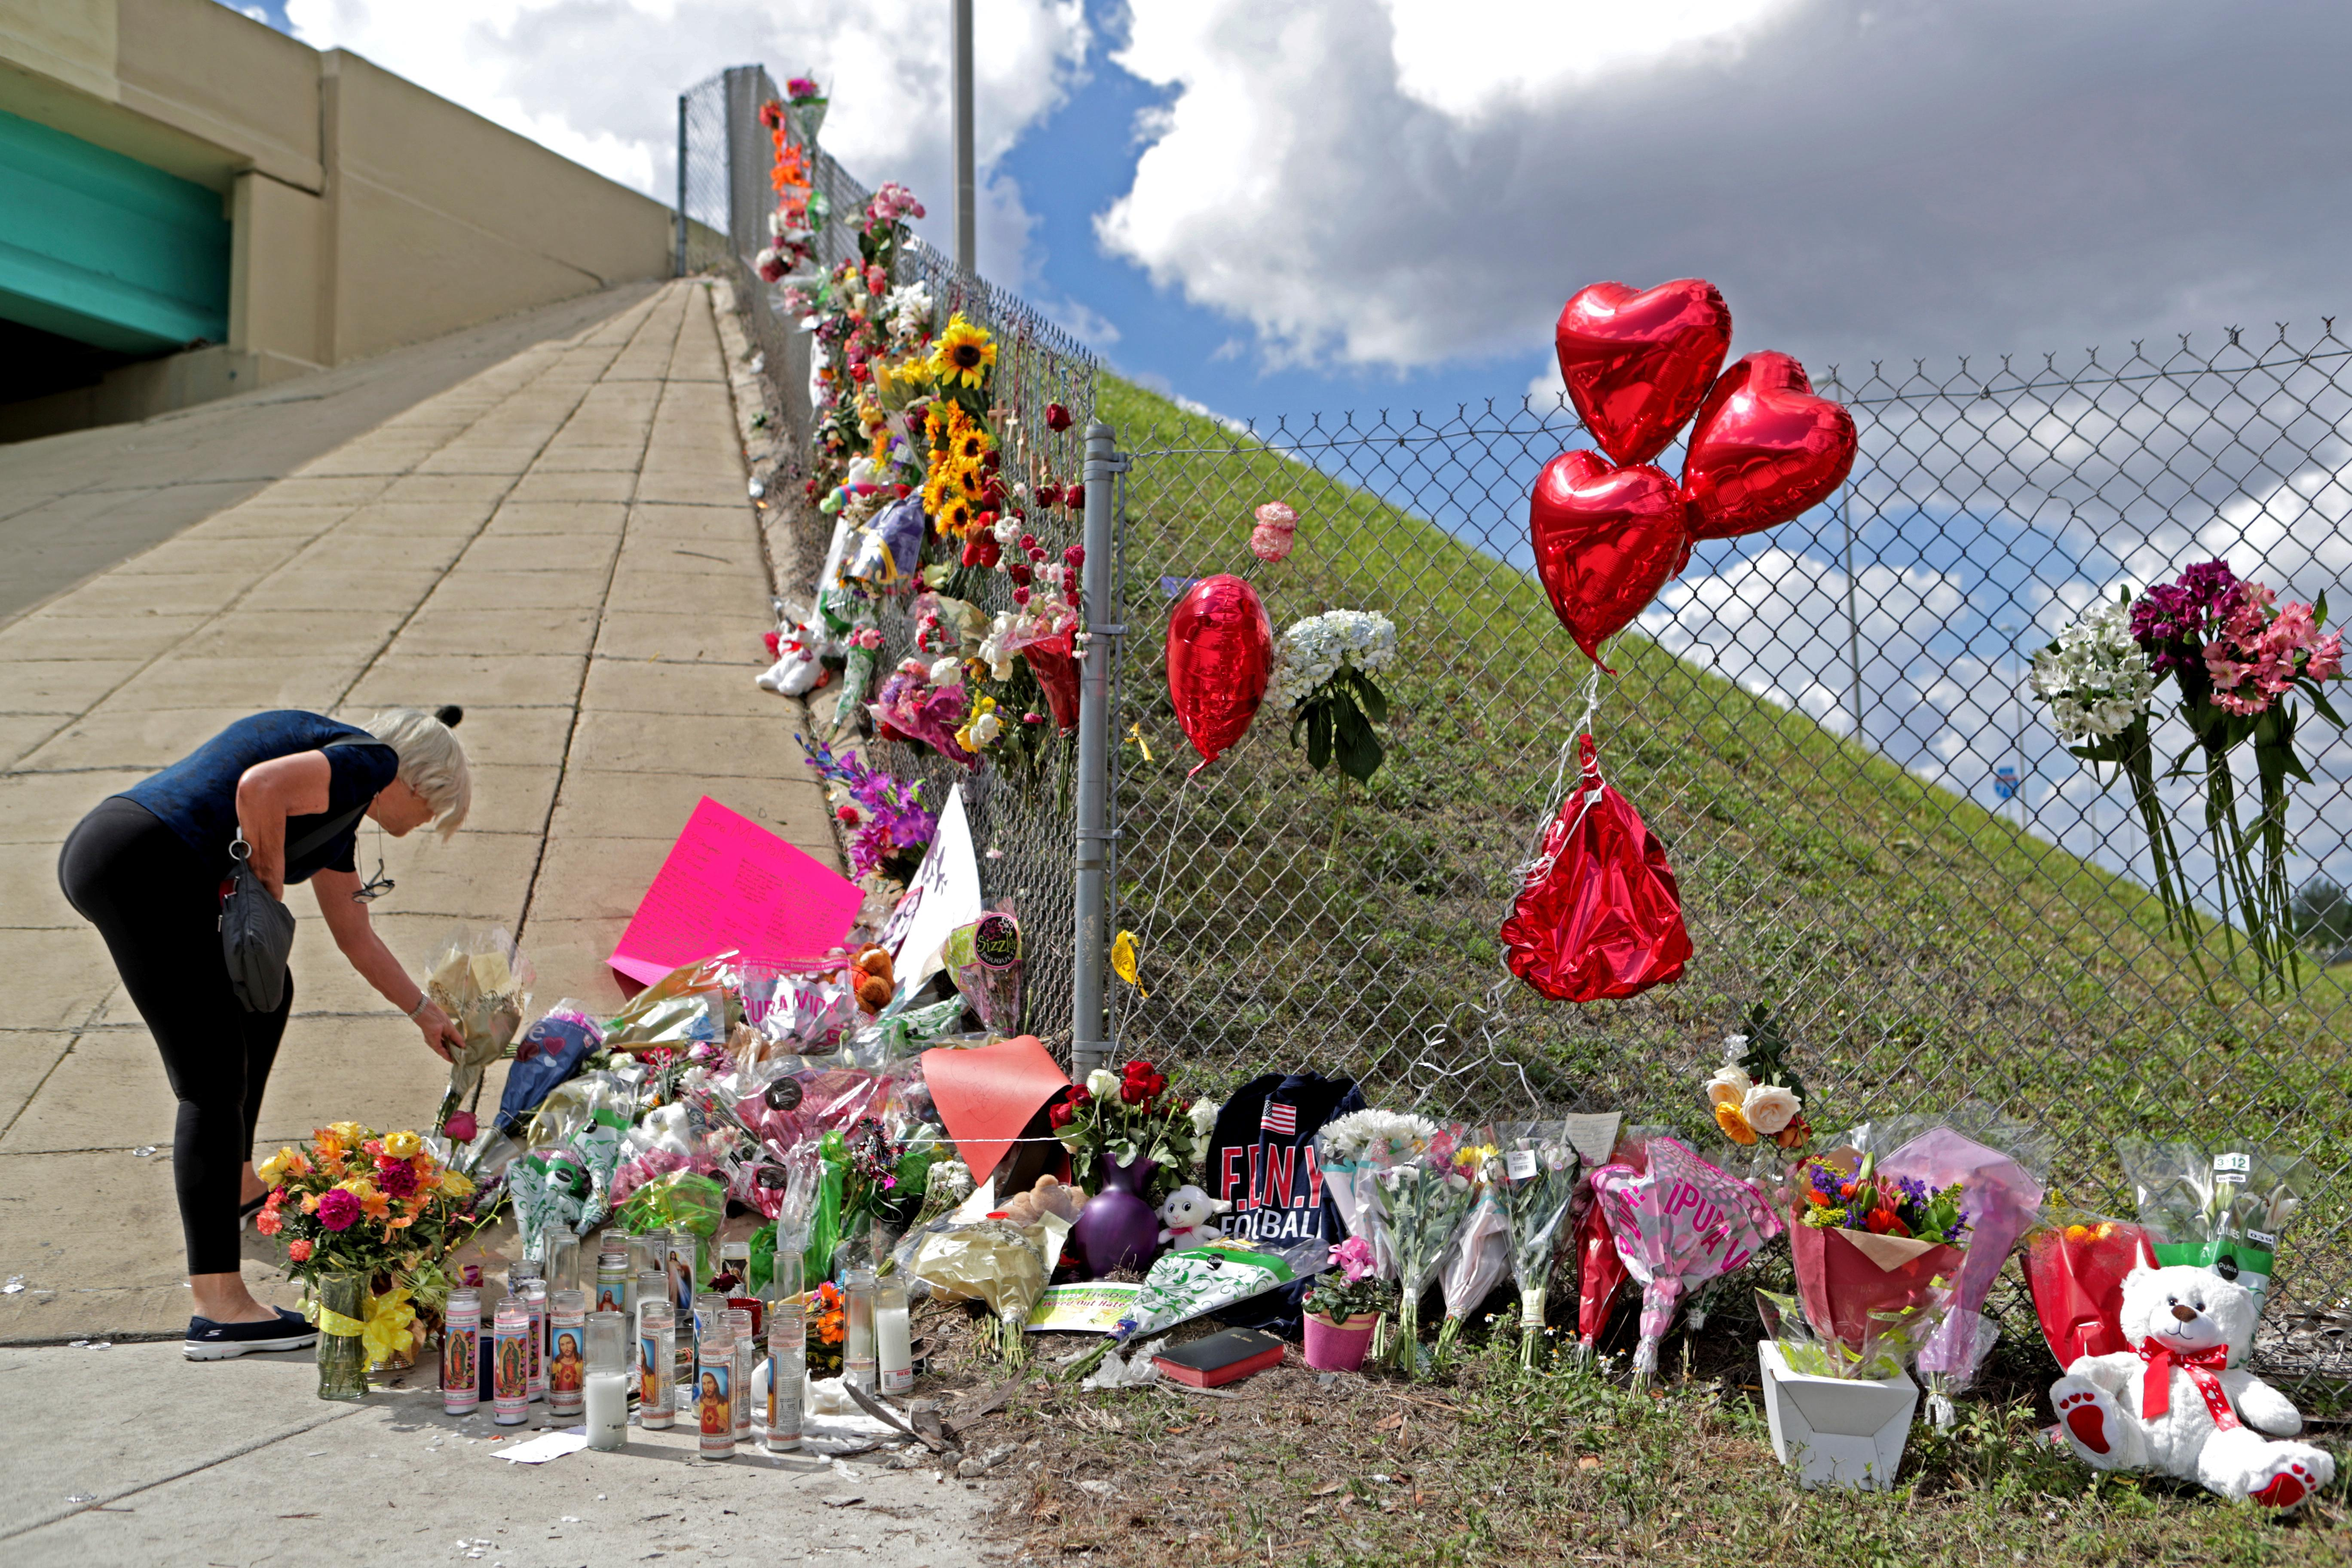 Ann Newman, of Deerfield Beach, Fla., a retired Broward County teacher, places flowers at a makeshift memorial at Marjory Stoneman Douglas High School in Parkland, Fla., Sunday, Feb. 18, 2018. Nikolas Cruz, a former student, was charged with 17 counts of premeditated murder on Thursday. (John McCall/South Florida Sun-Sentinel via AP)